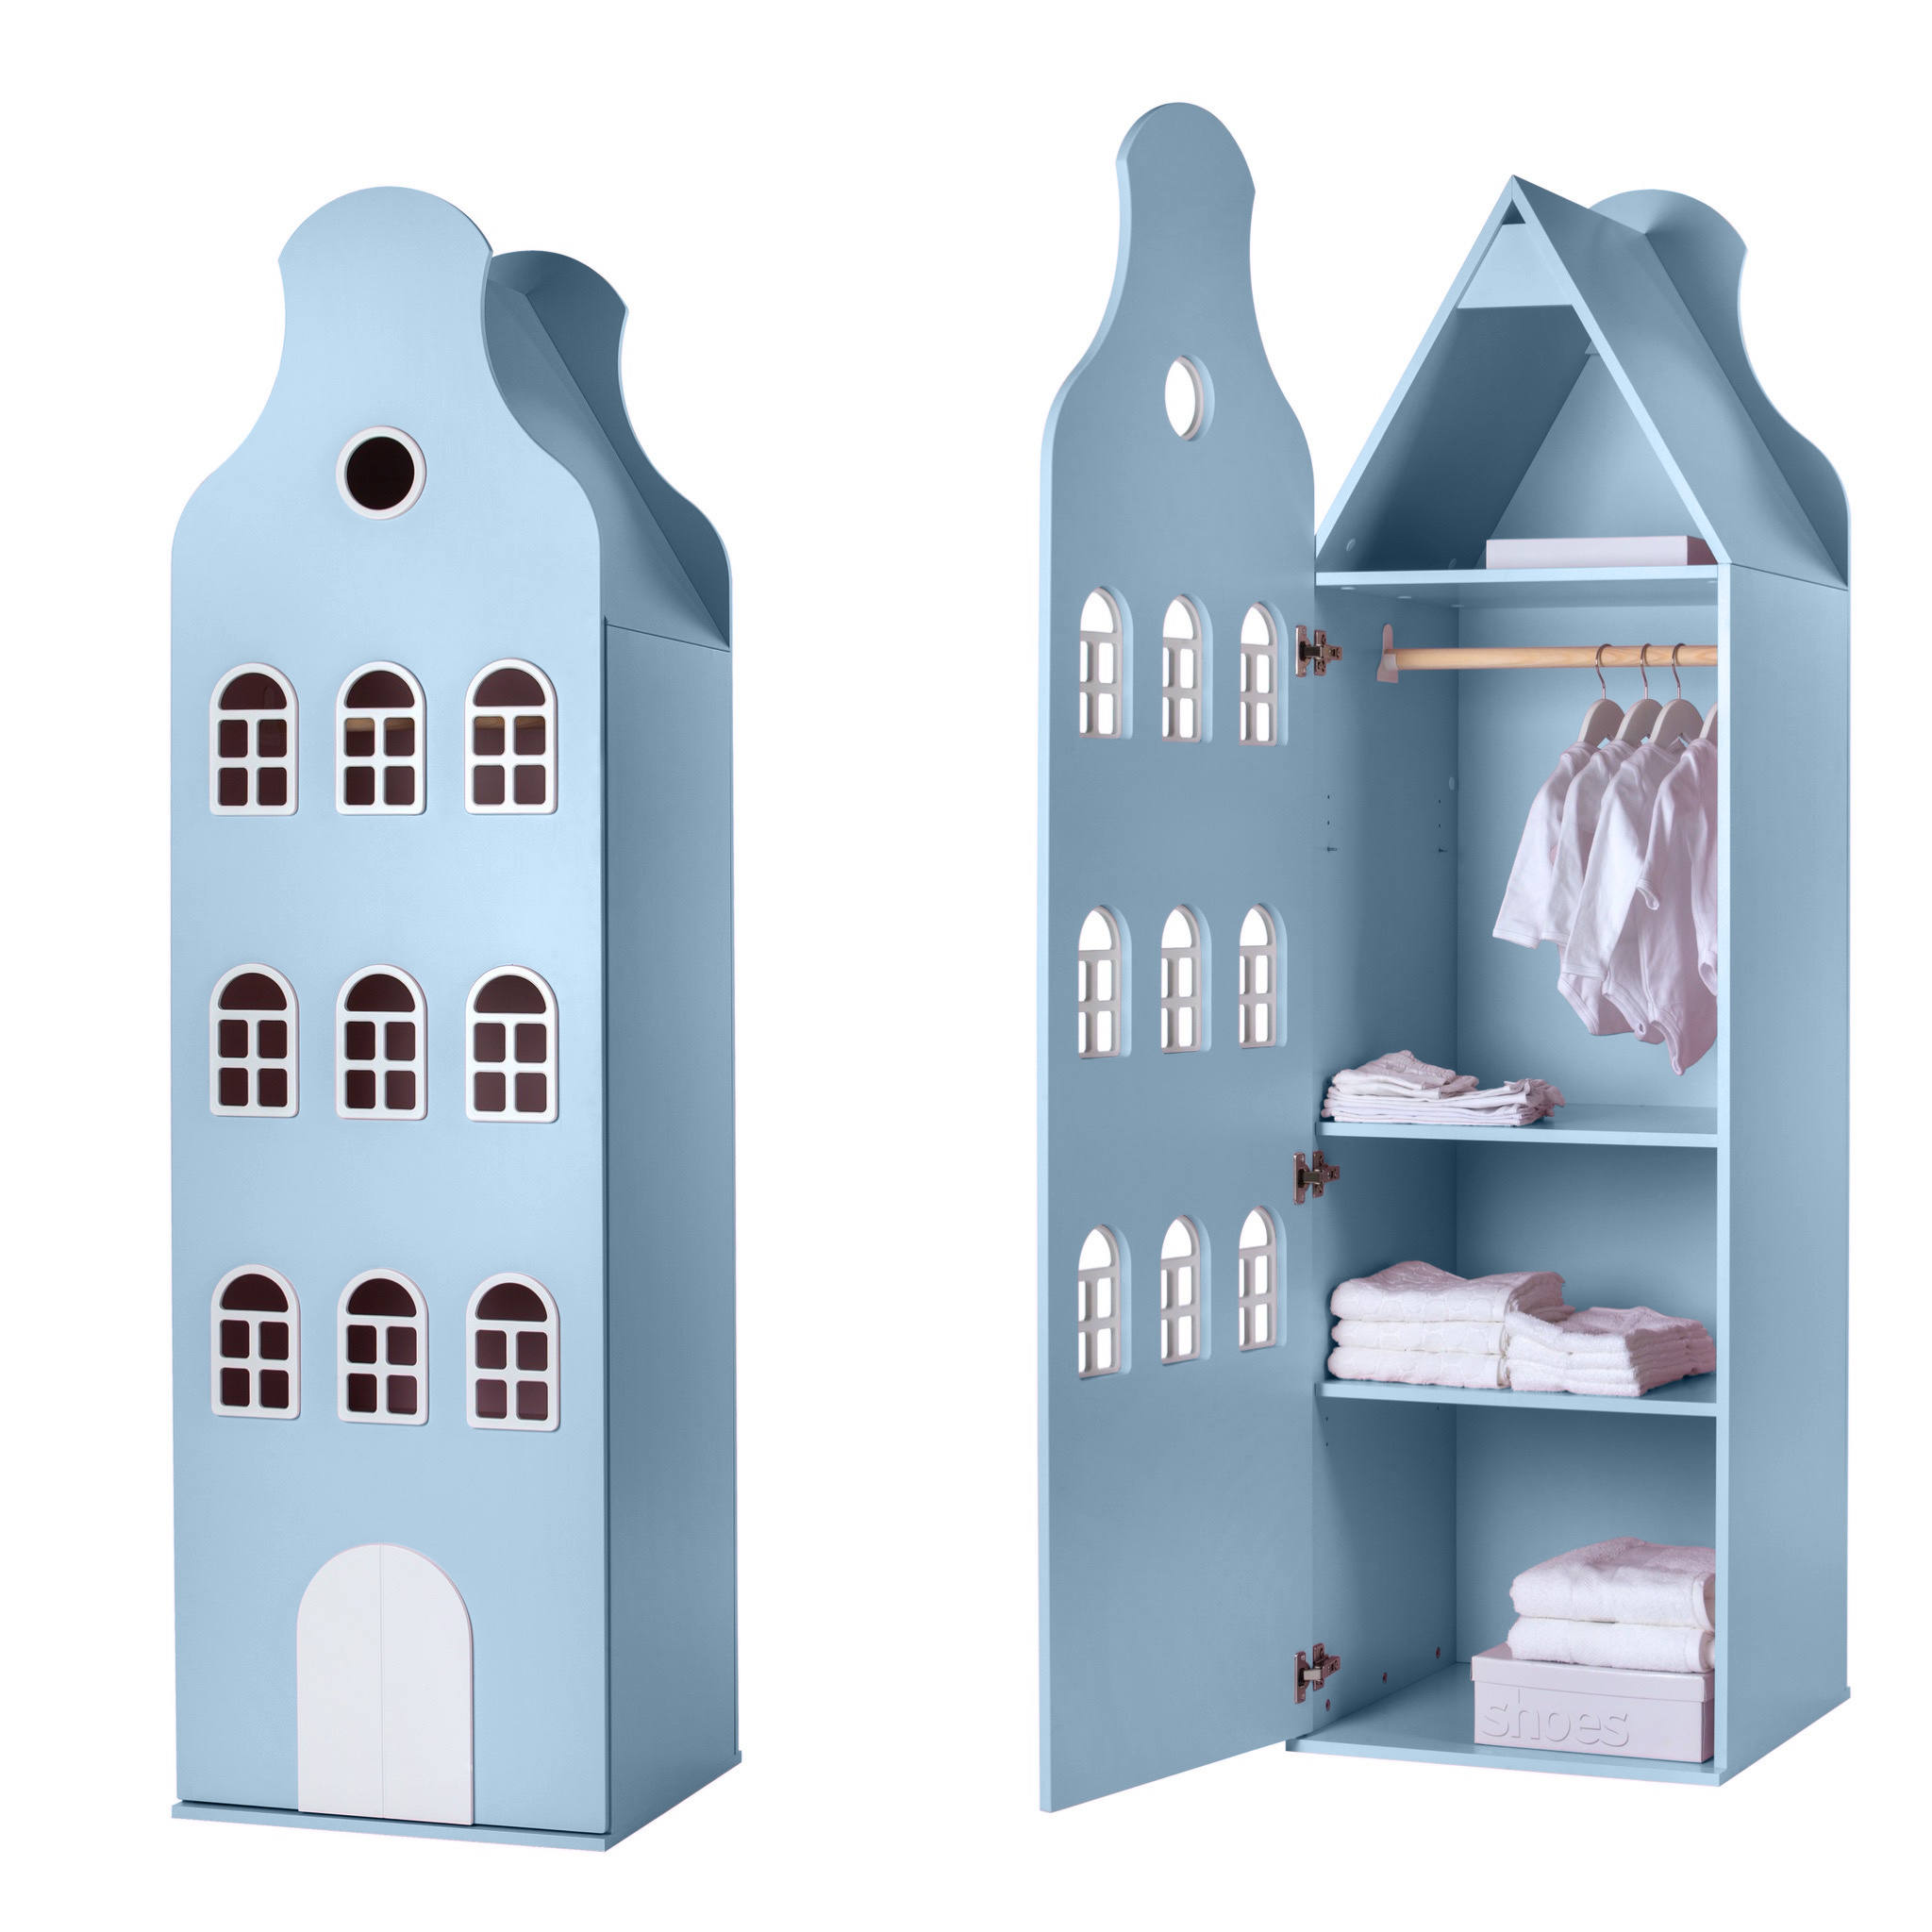 Cabinet Amsterdam Bellgable, XL 216/60/60 cm. All colors.-5